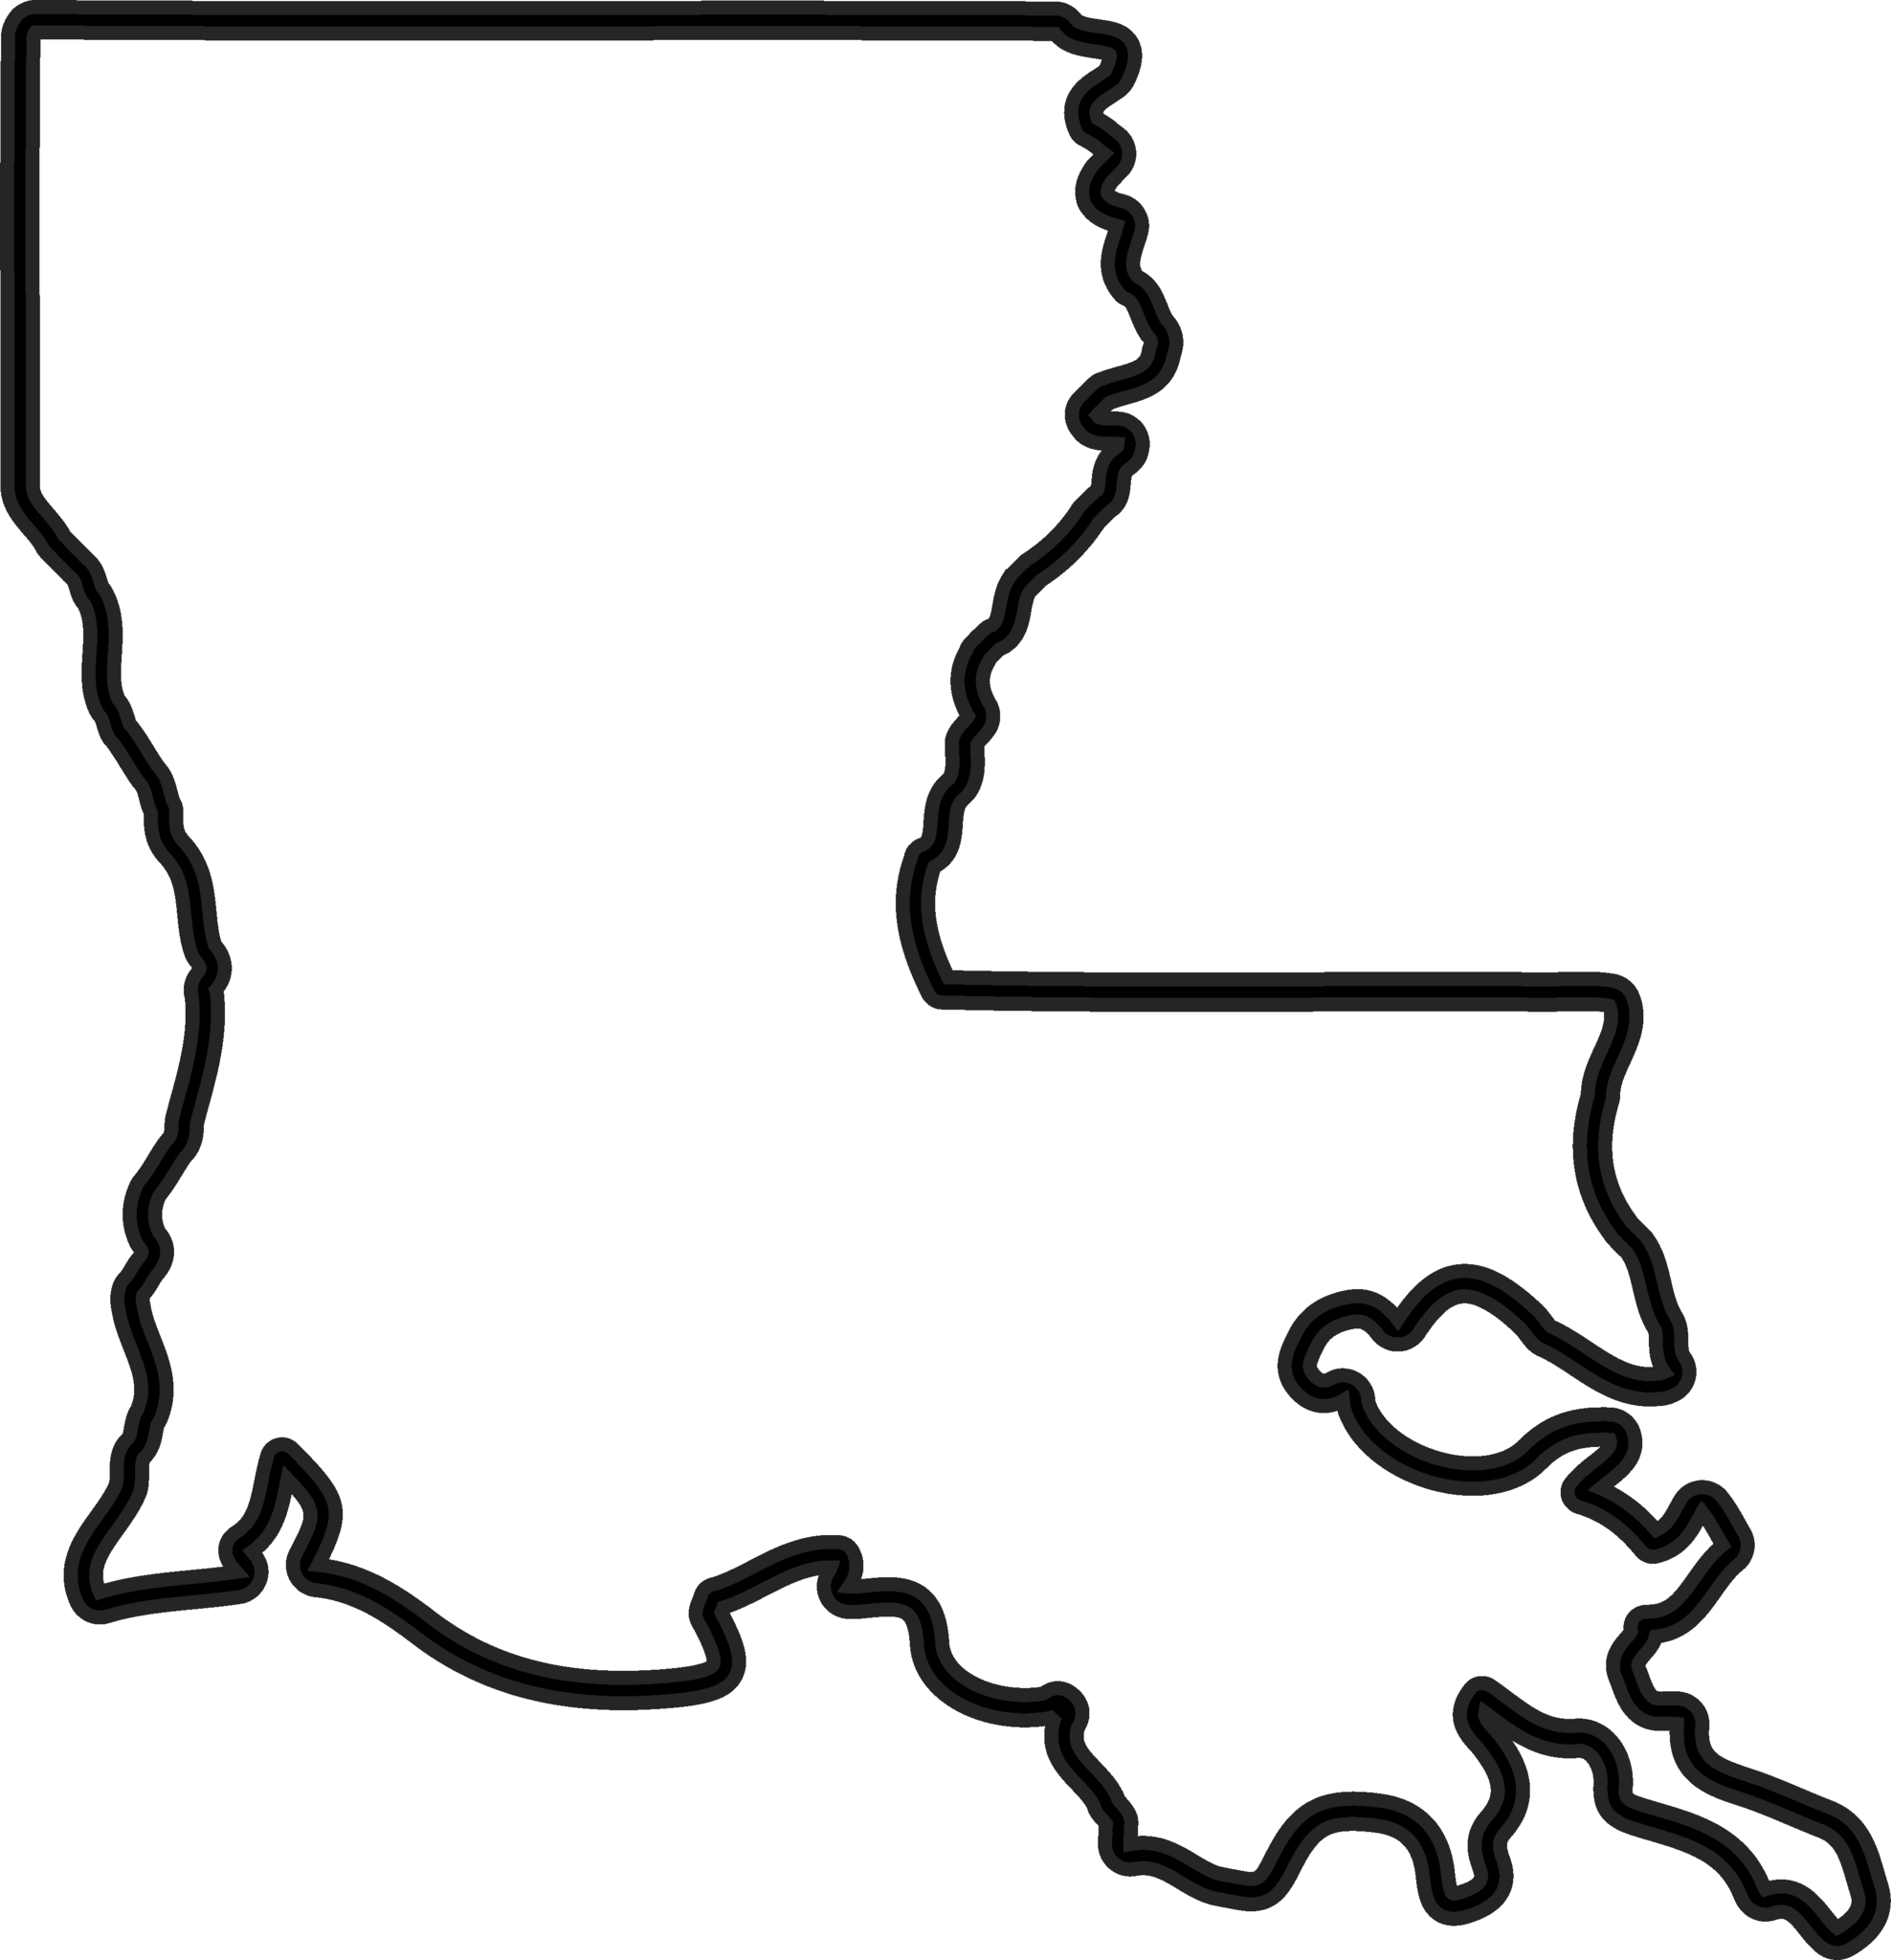 Louisiana clipart. Outline rubber stamp state